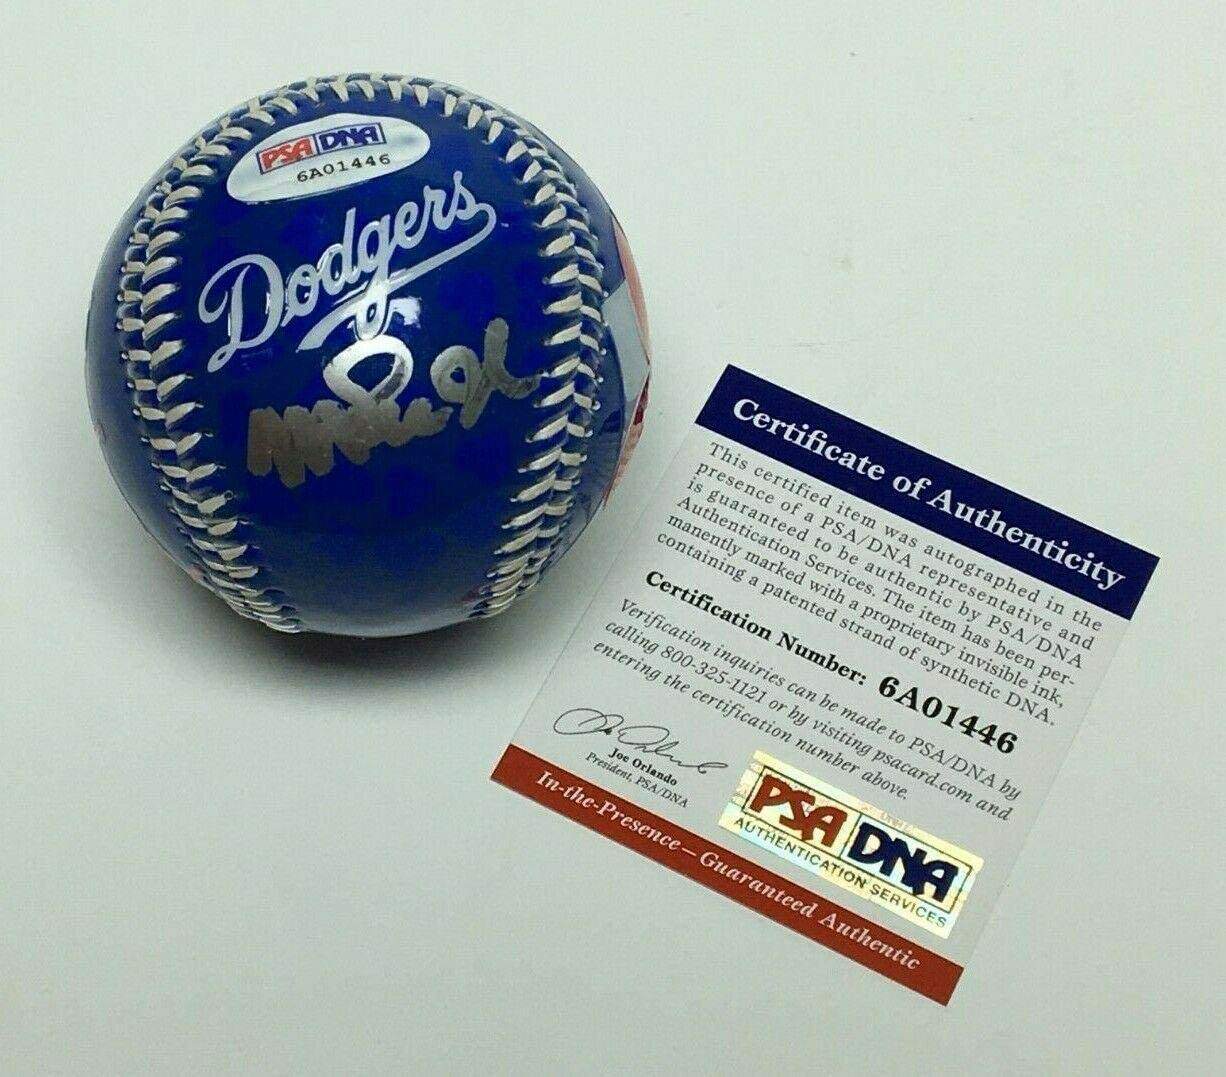 Magic Johnson Signed Lois Angeles Dodgers Baseball *Lakers HOF/MVP 6A01446 - PSA/DNA Certified - NBA Autographed Miscellaneous Items